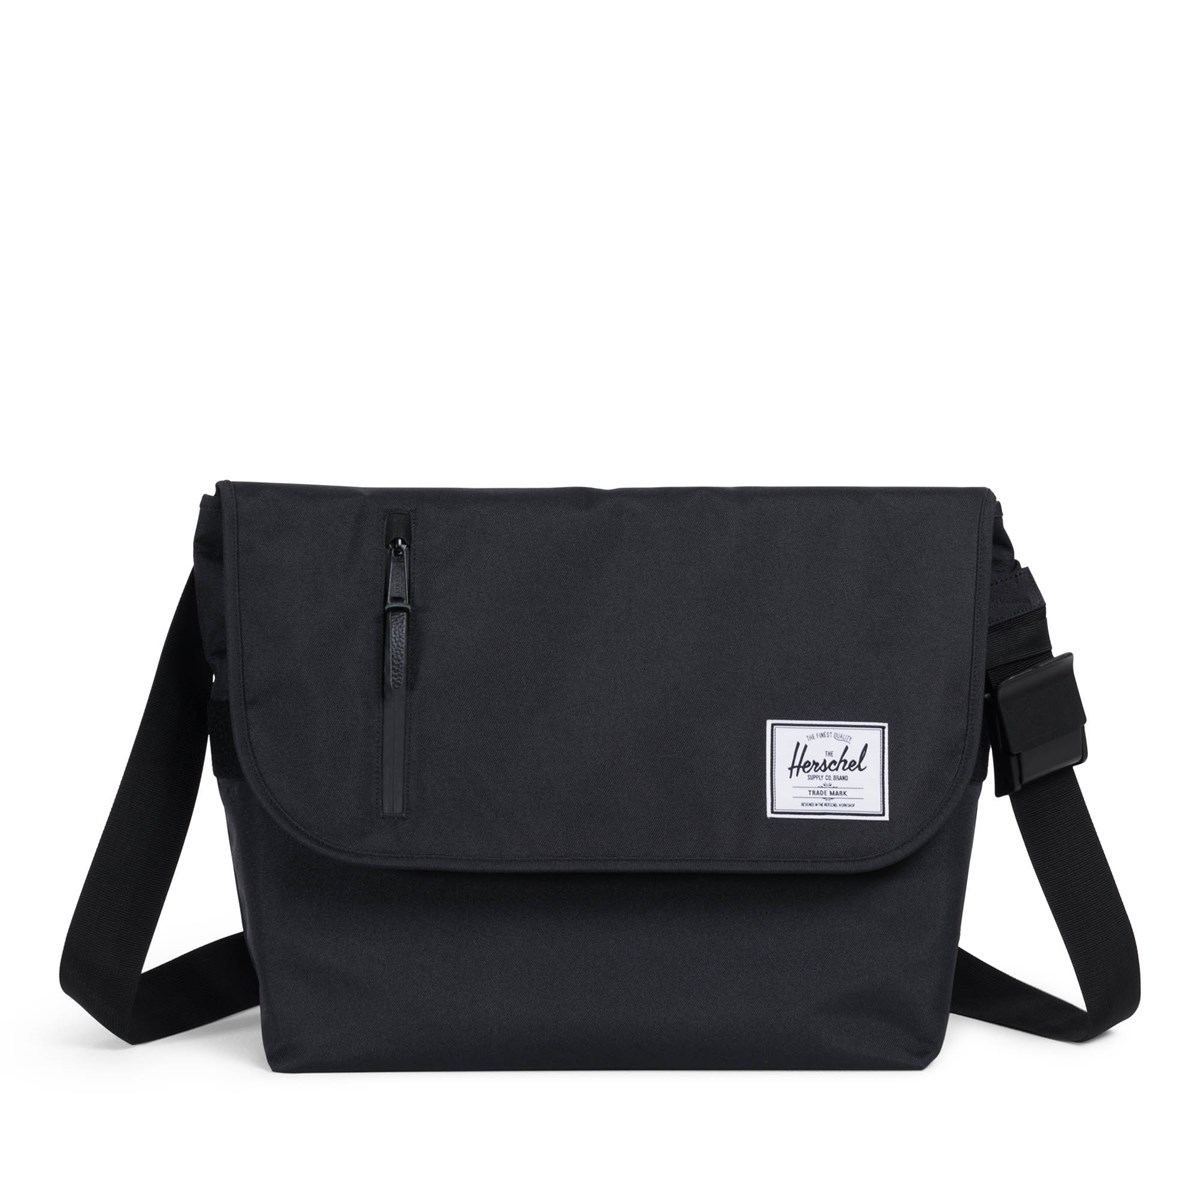 Odell Black Cross-Body Bag